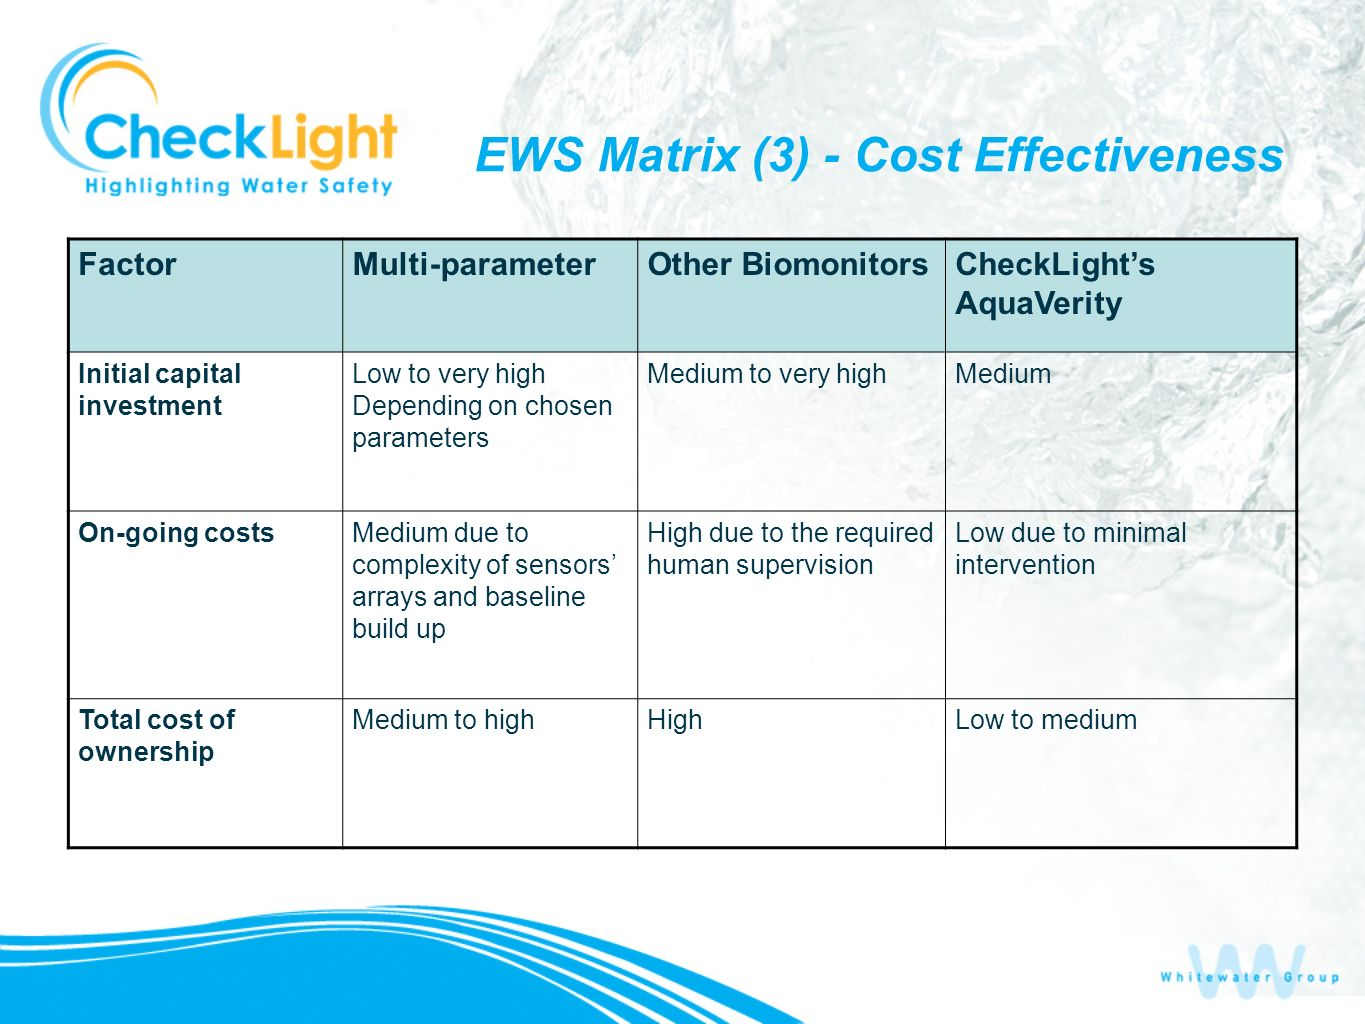 EWS Matrix (3) - Cost Effectiveness